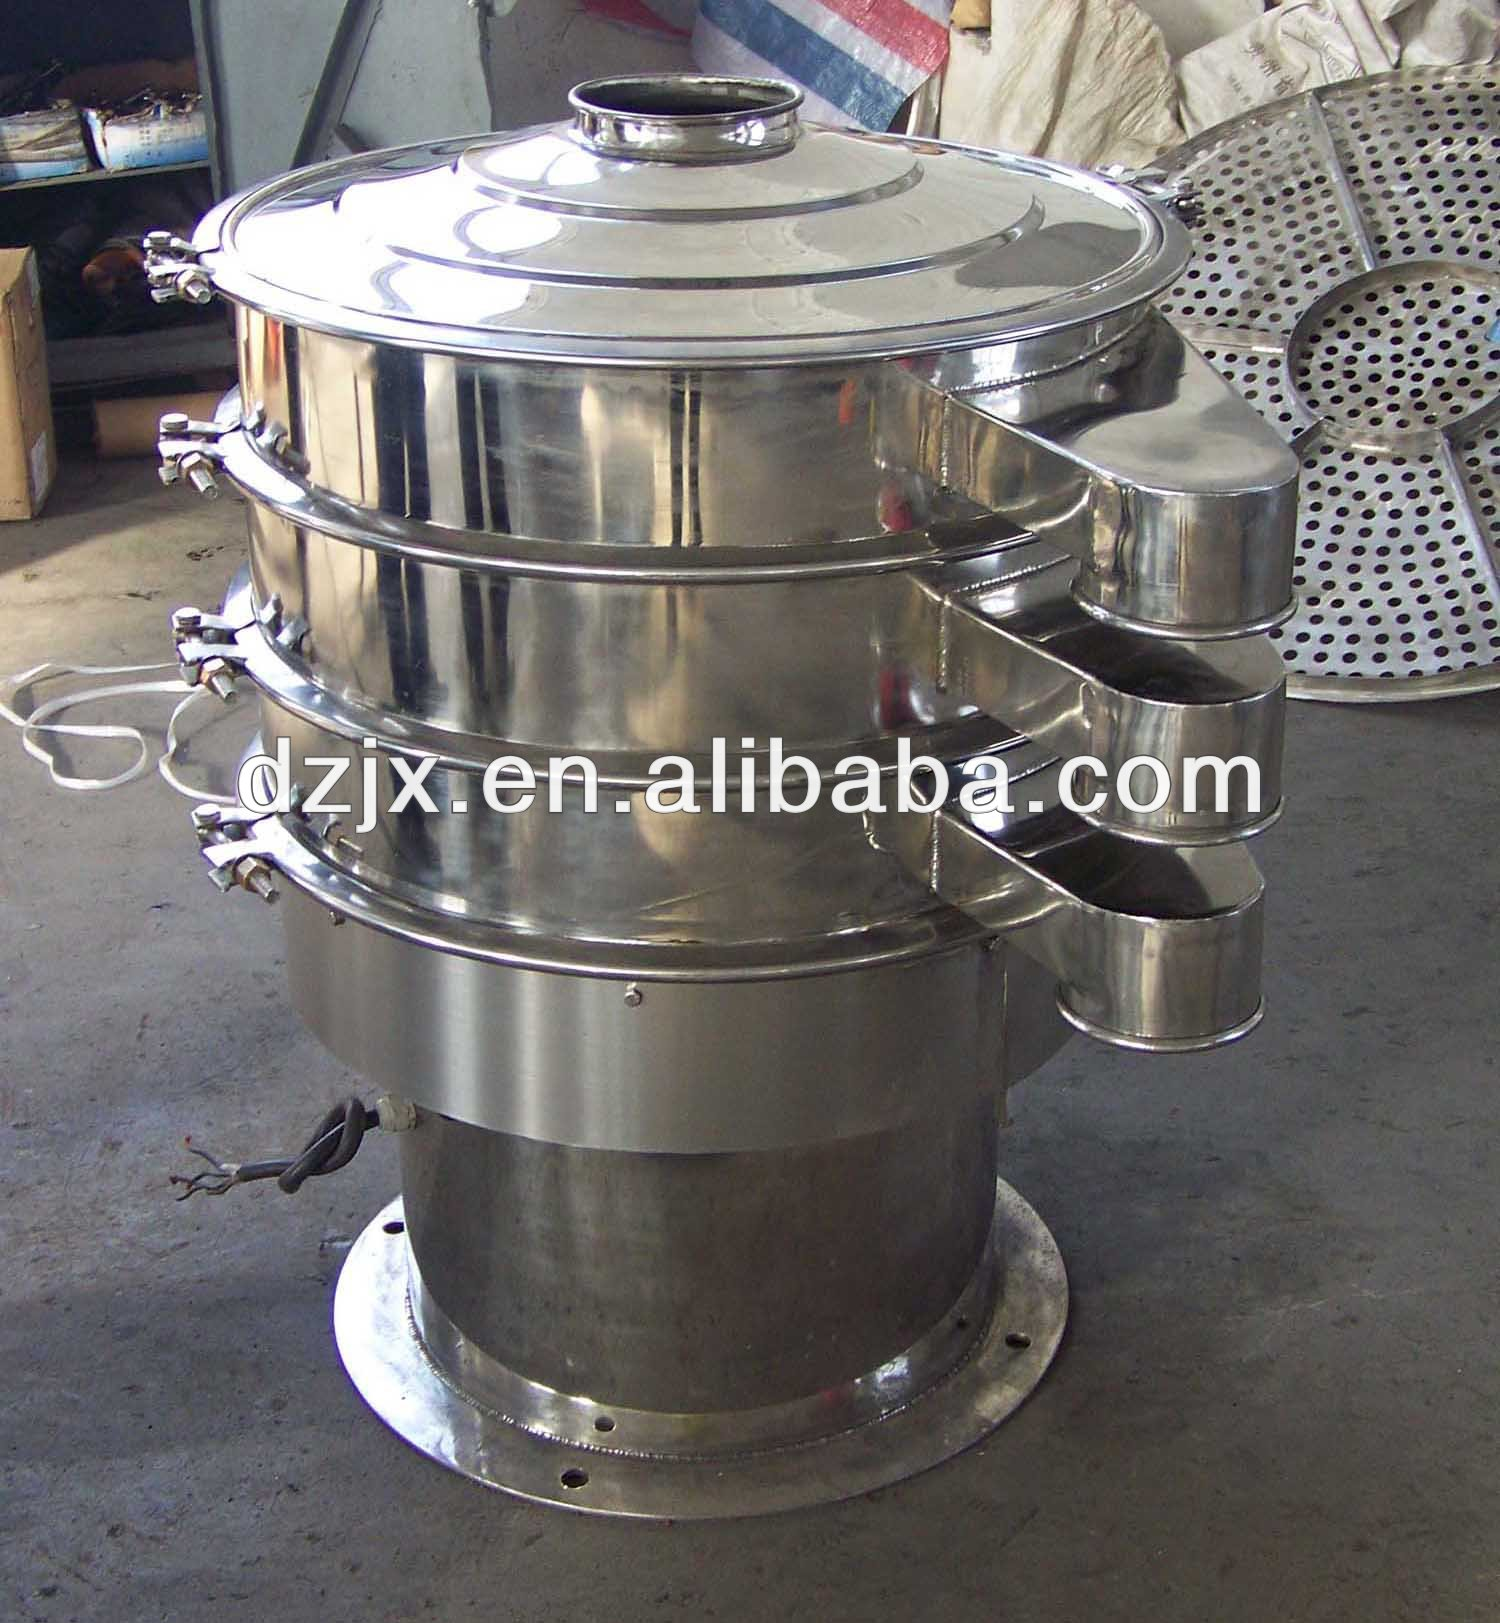 DZ S49-B series Rice / Grain Sieve